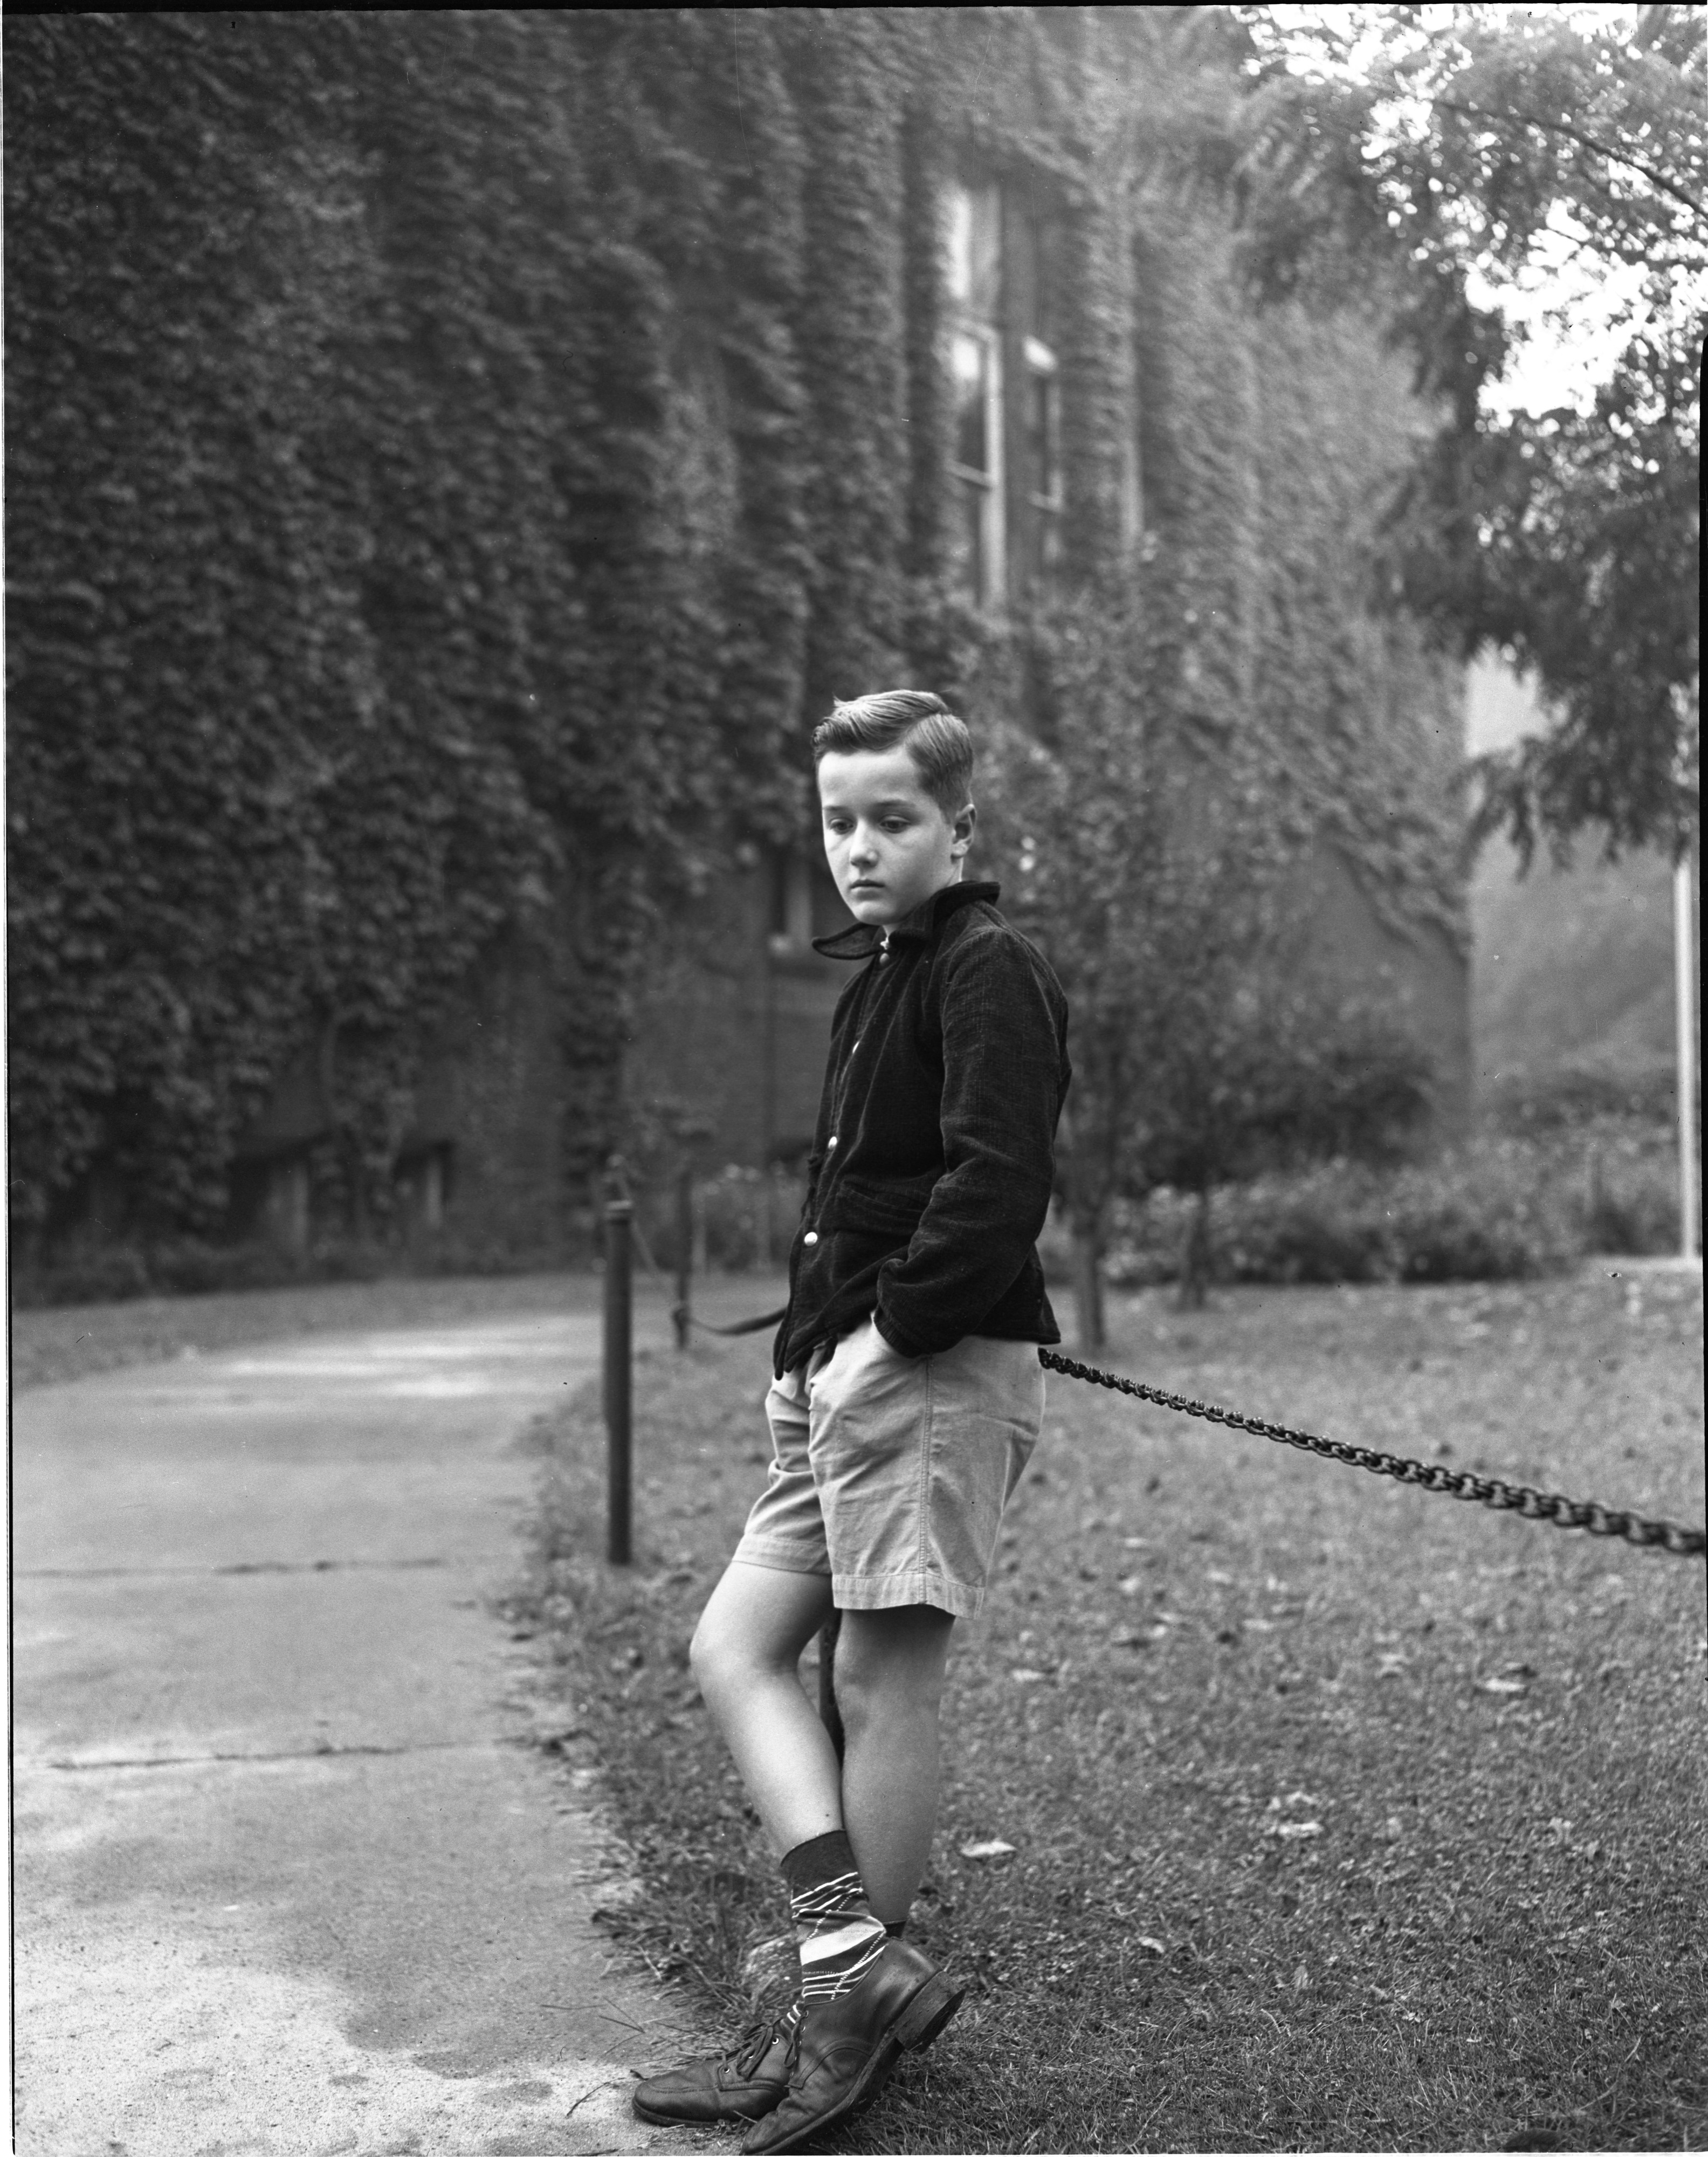 Jimmie Tanner Lingers Outside Eberbach On The First Day Of School, September 1946 image